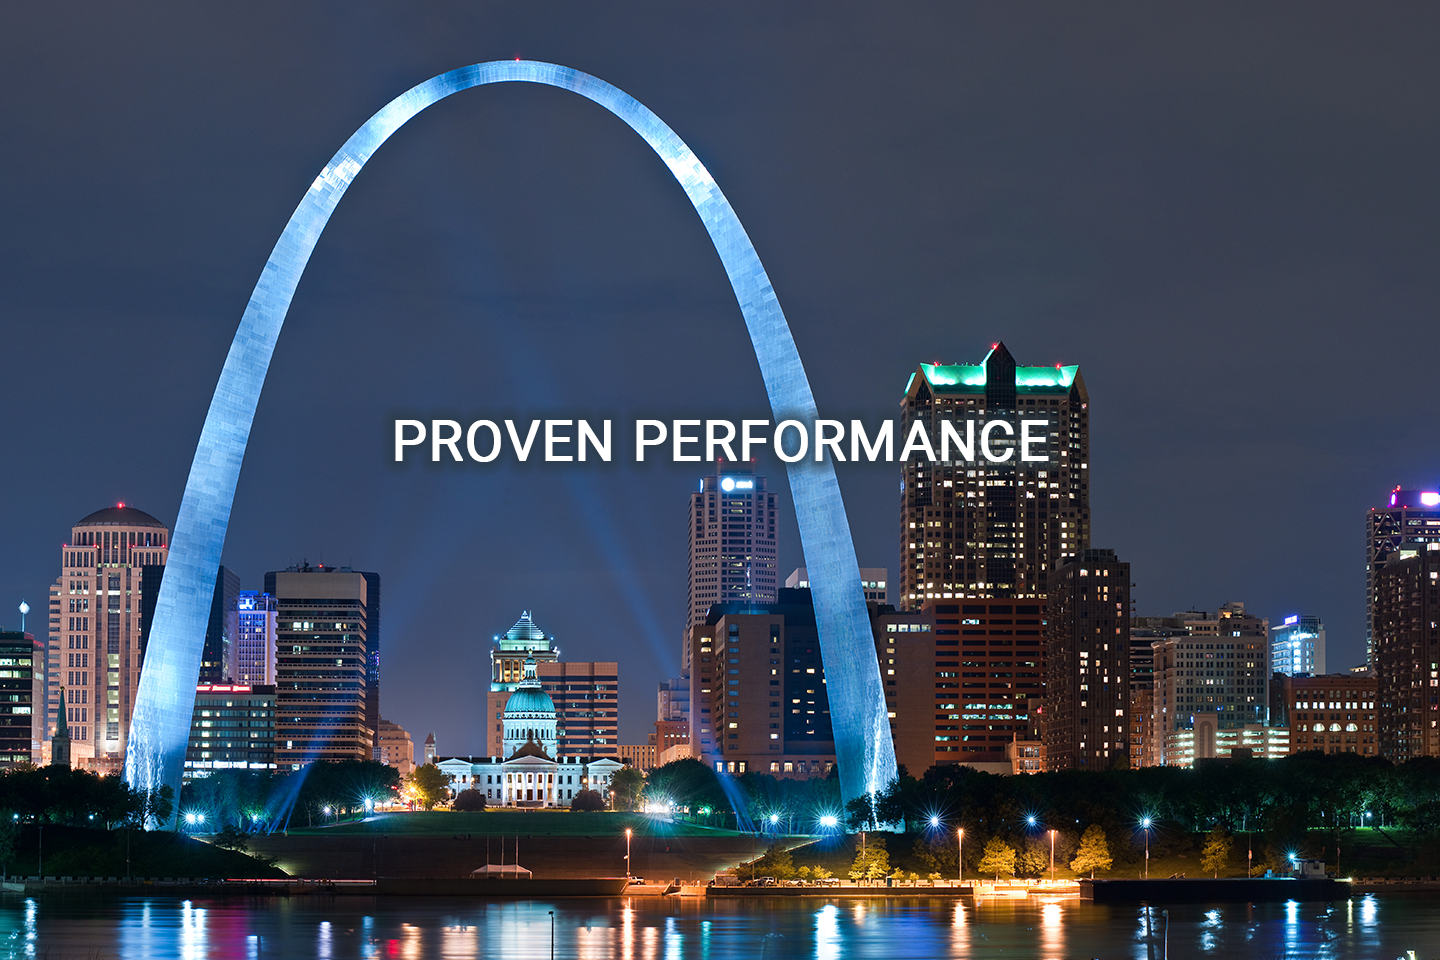 St Louis Based Capital Firm